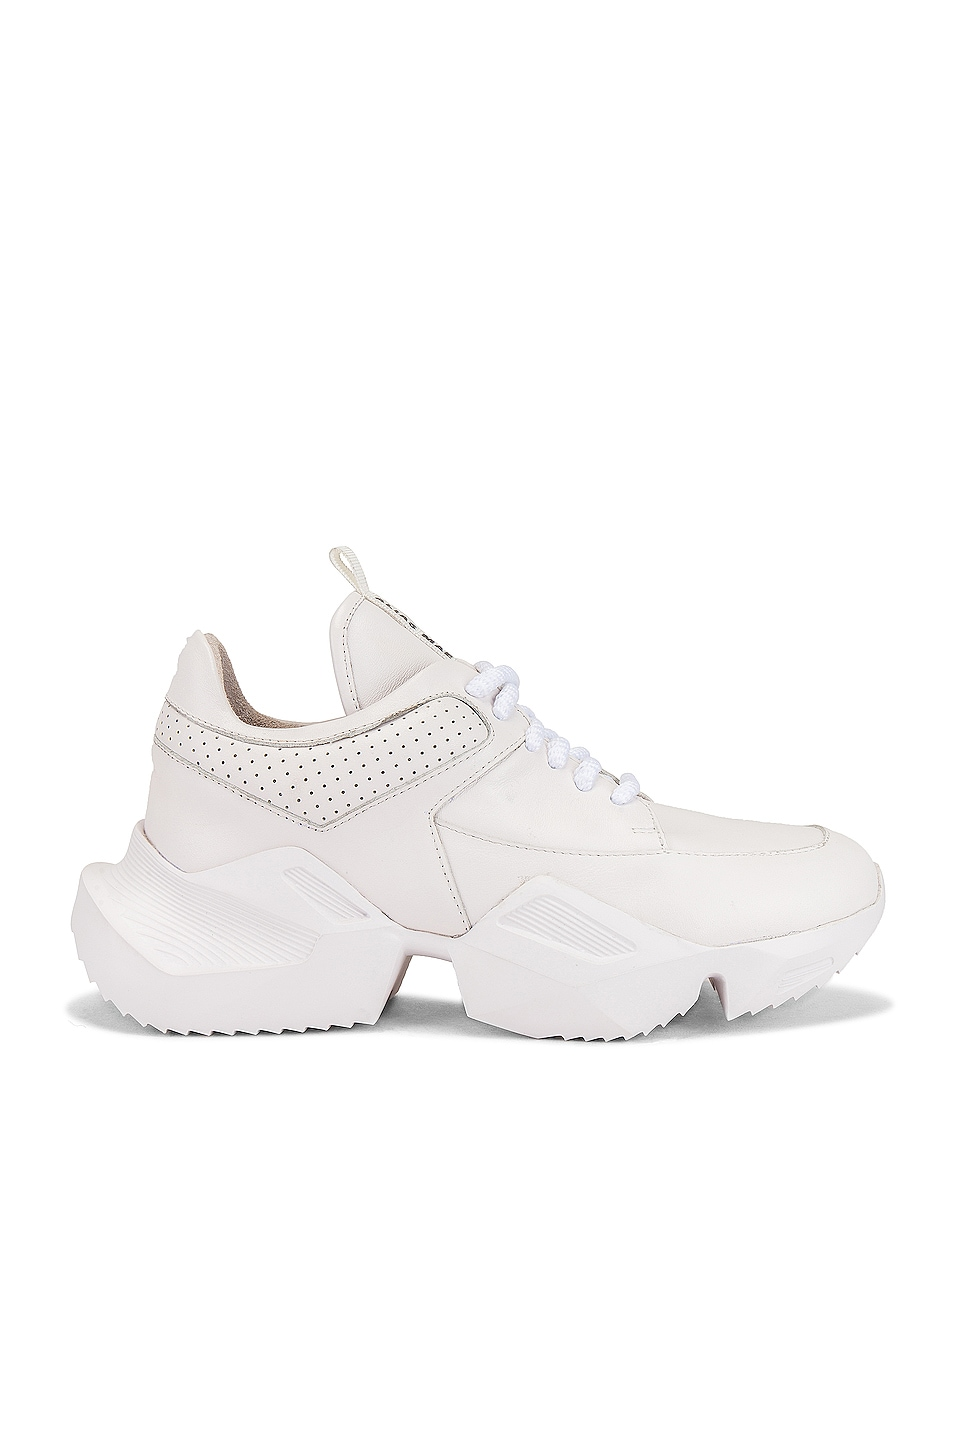 Alias Mae Tommy Sneaker in Cream Leather